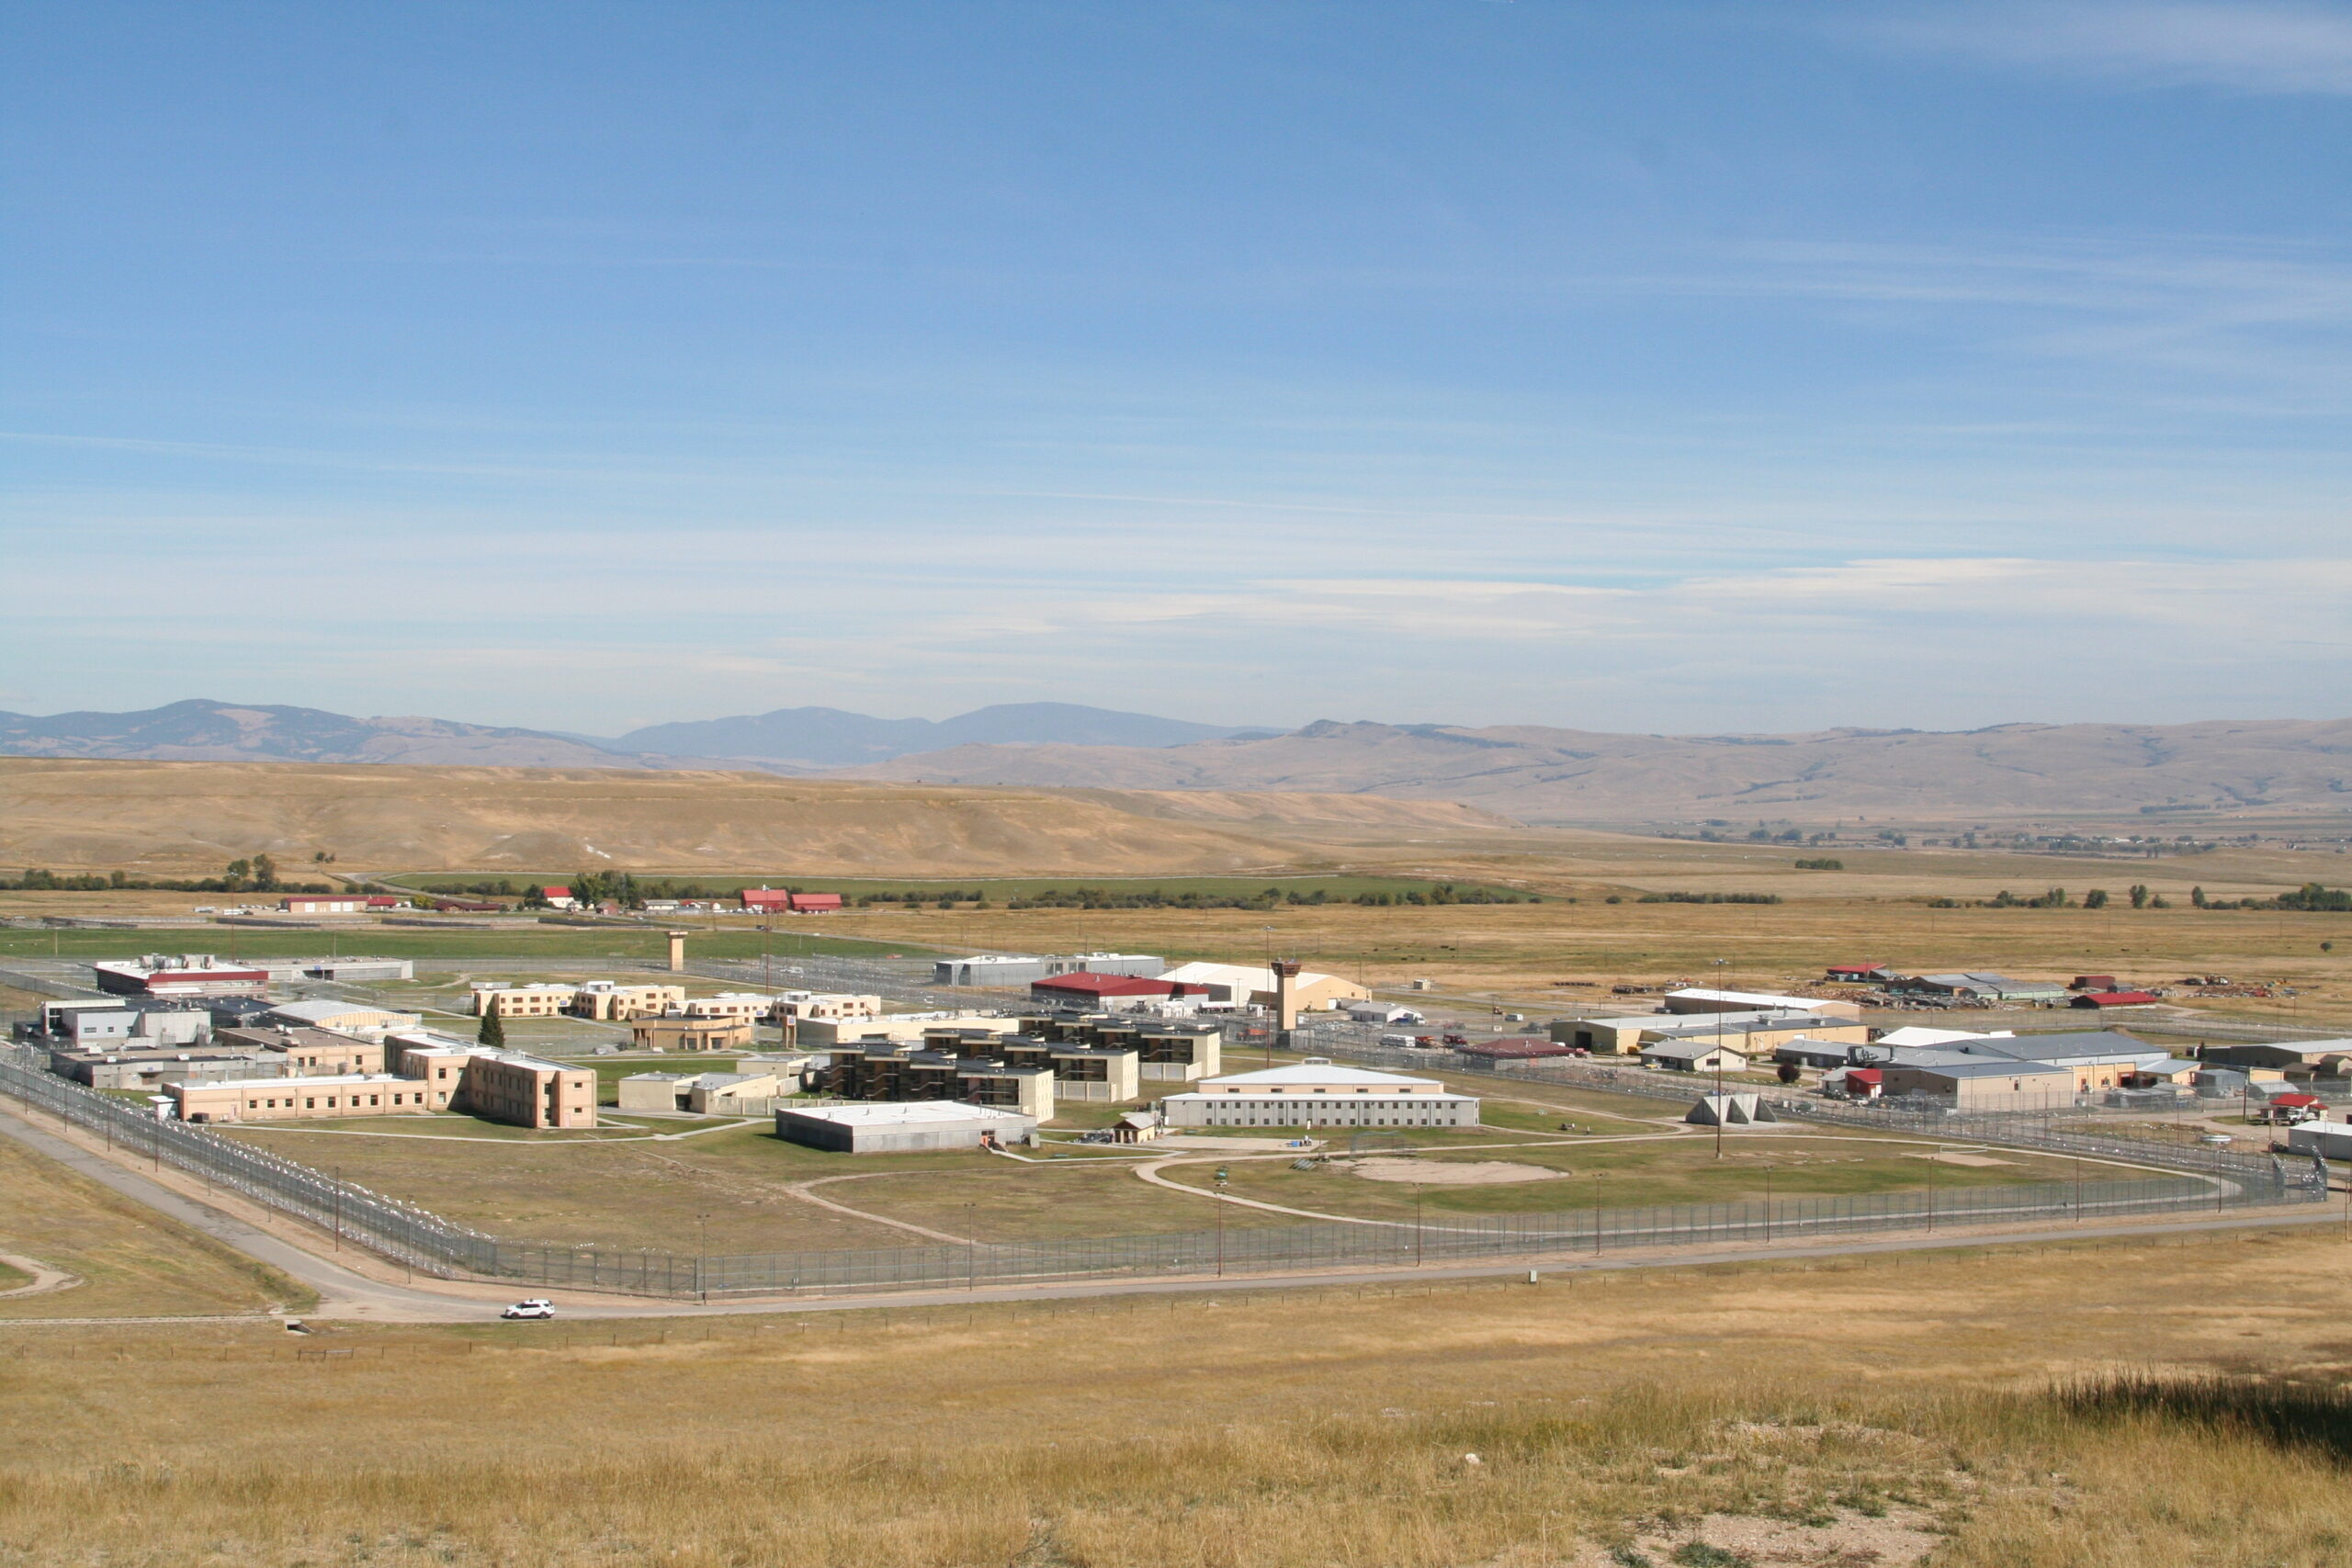 ICYMI: Prison gerrymandering could impact Indian Country voters